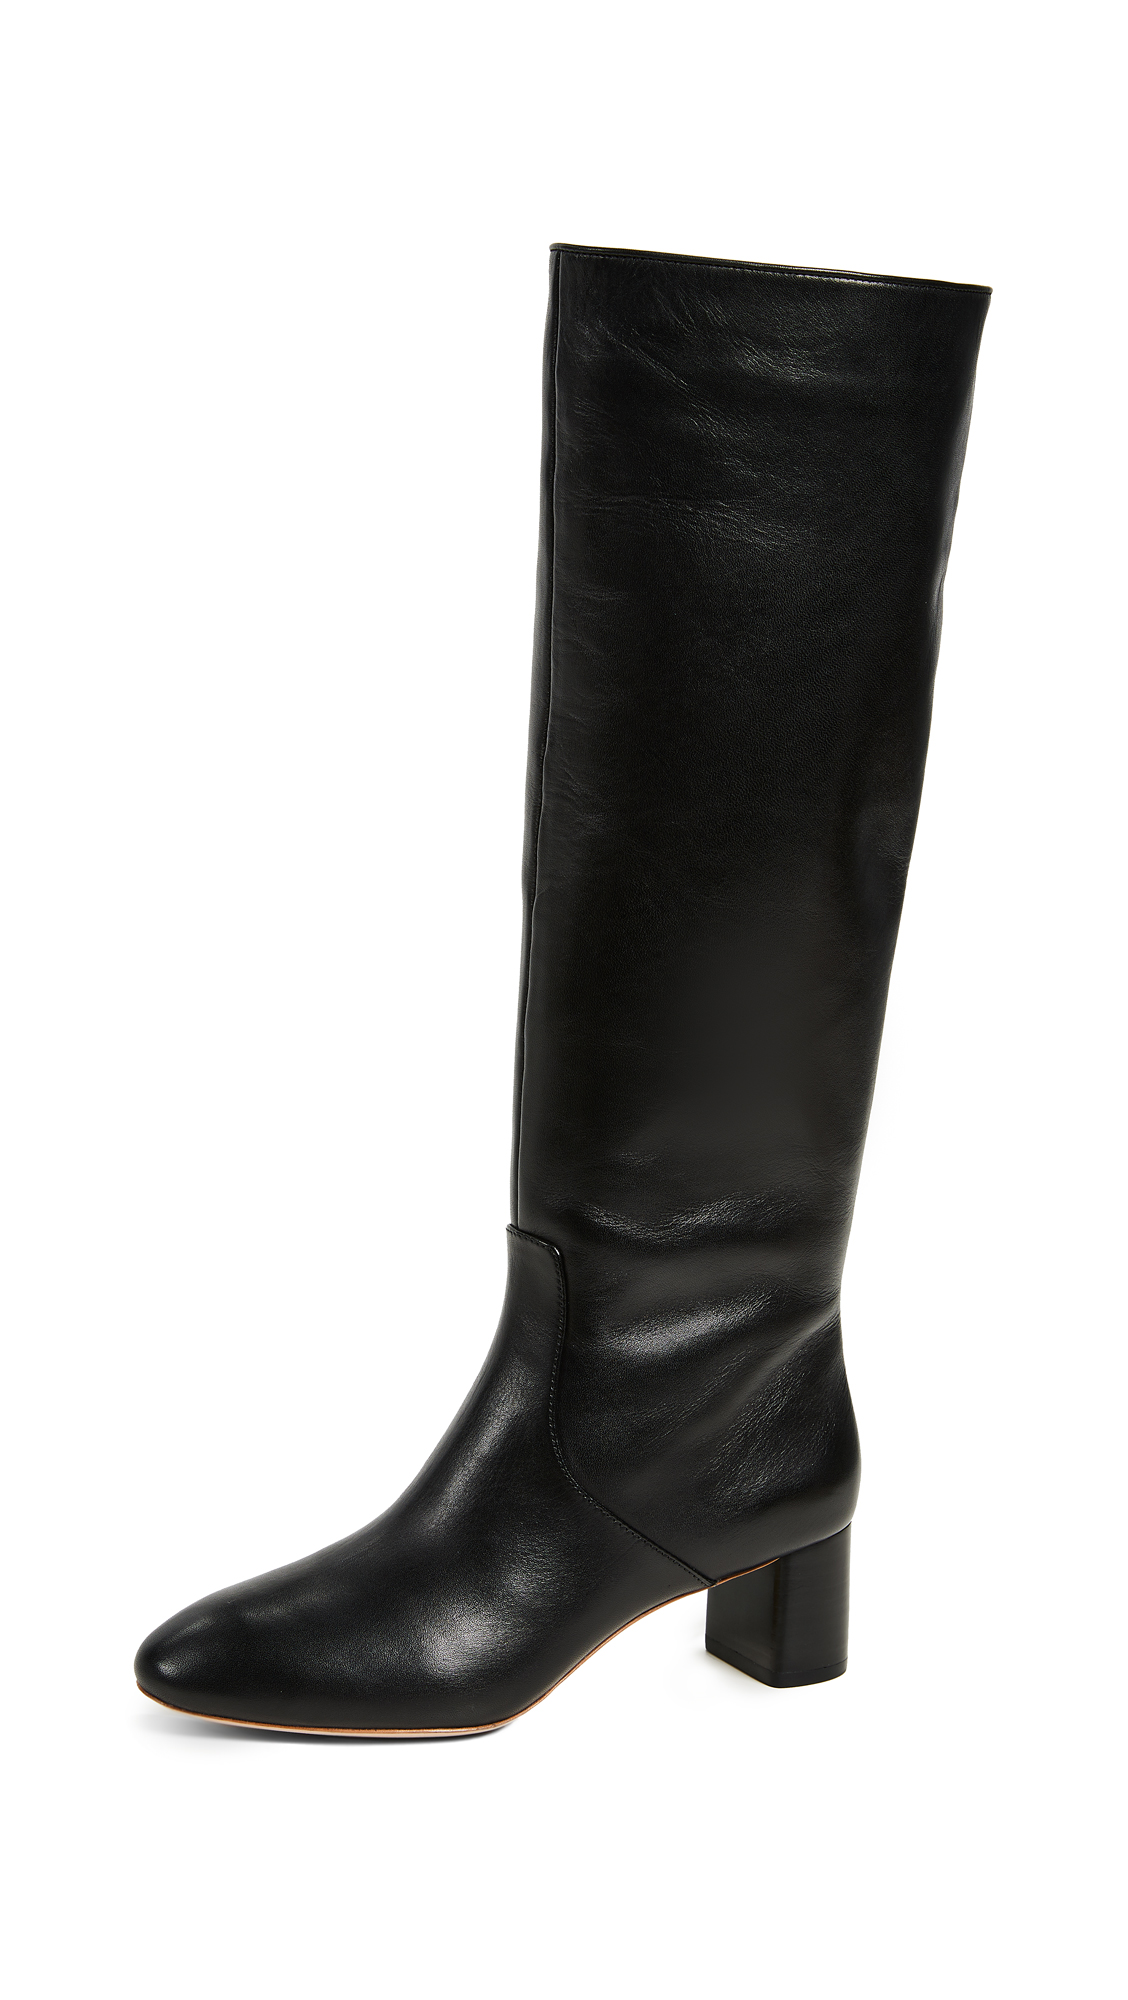 Loeffler Randall Gia Tall Boots In Black